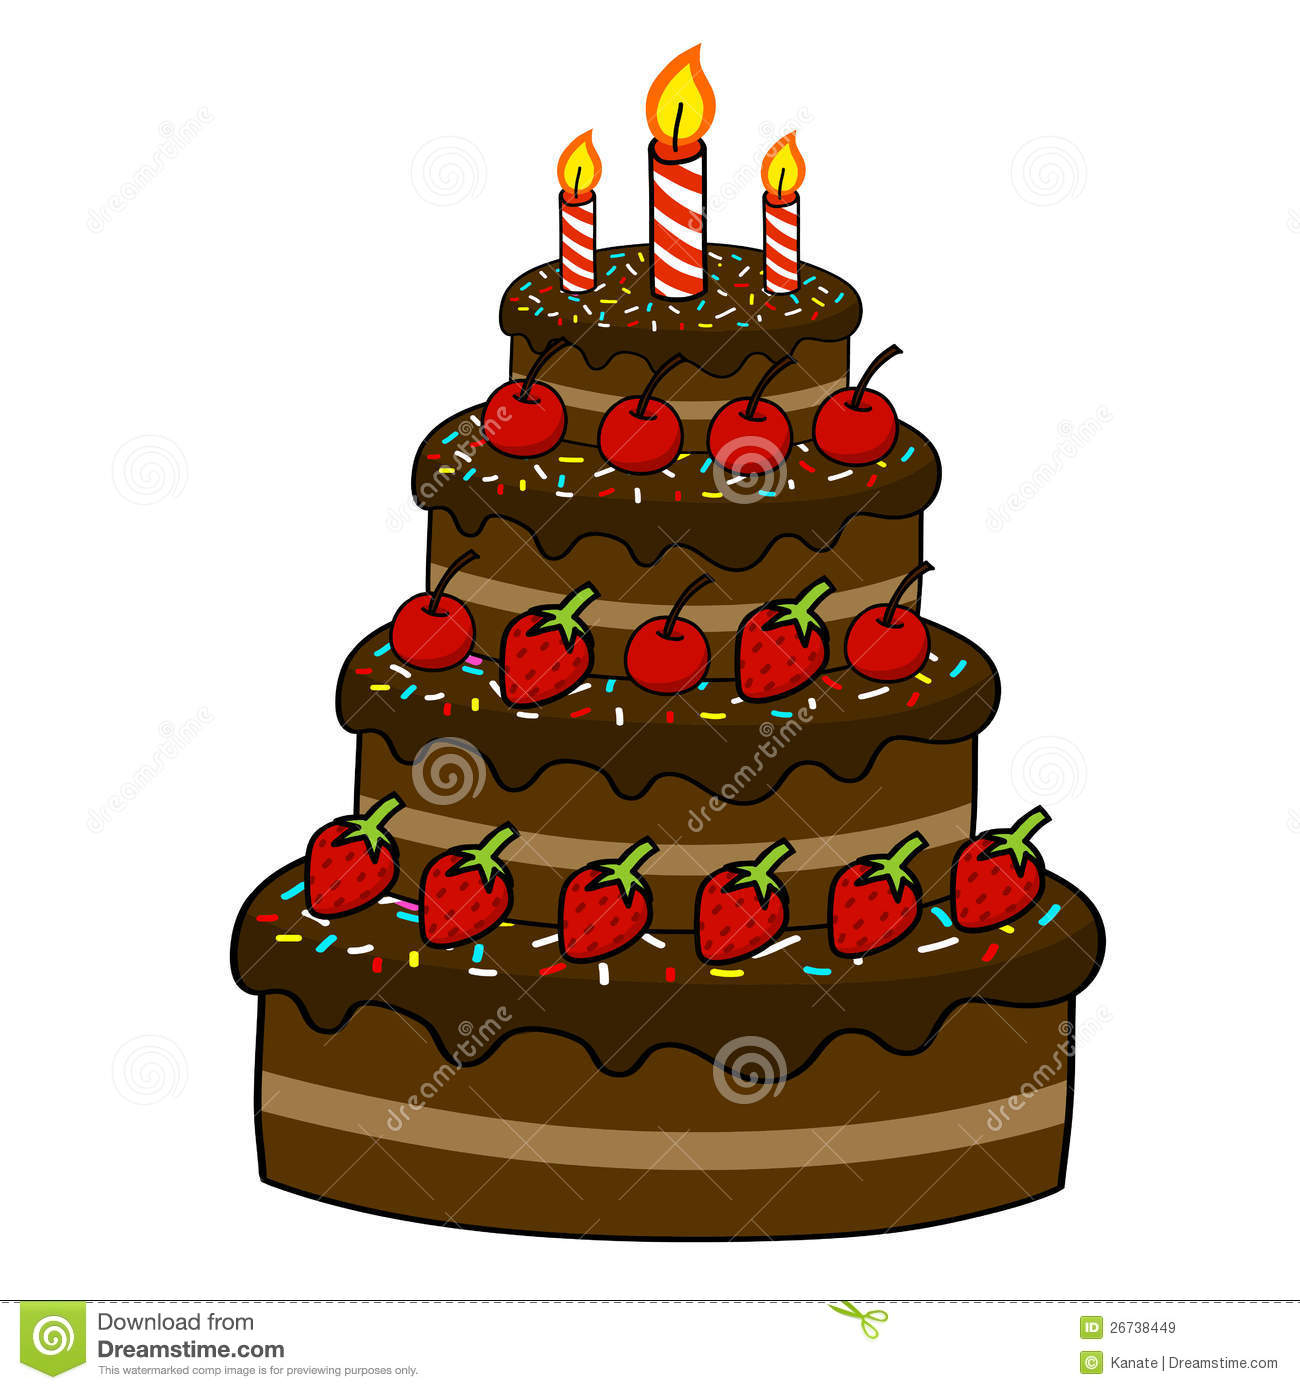 Cartoon Cake Hand Drawing Royalty Free Stock Images